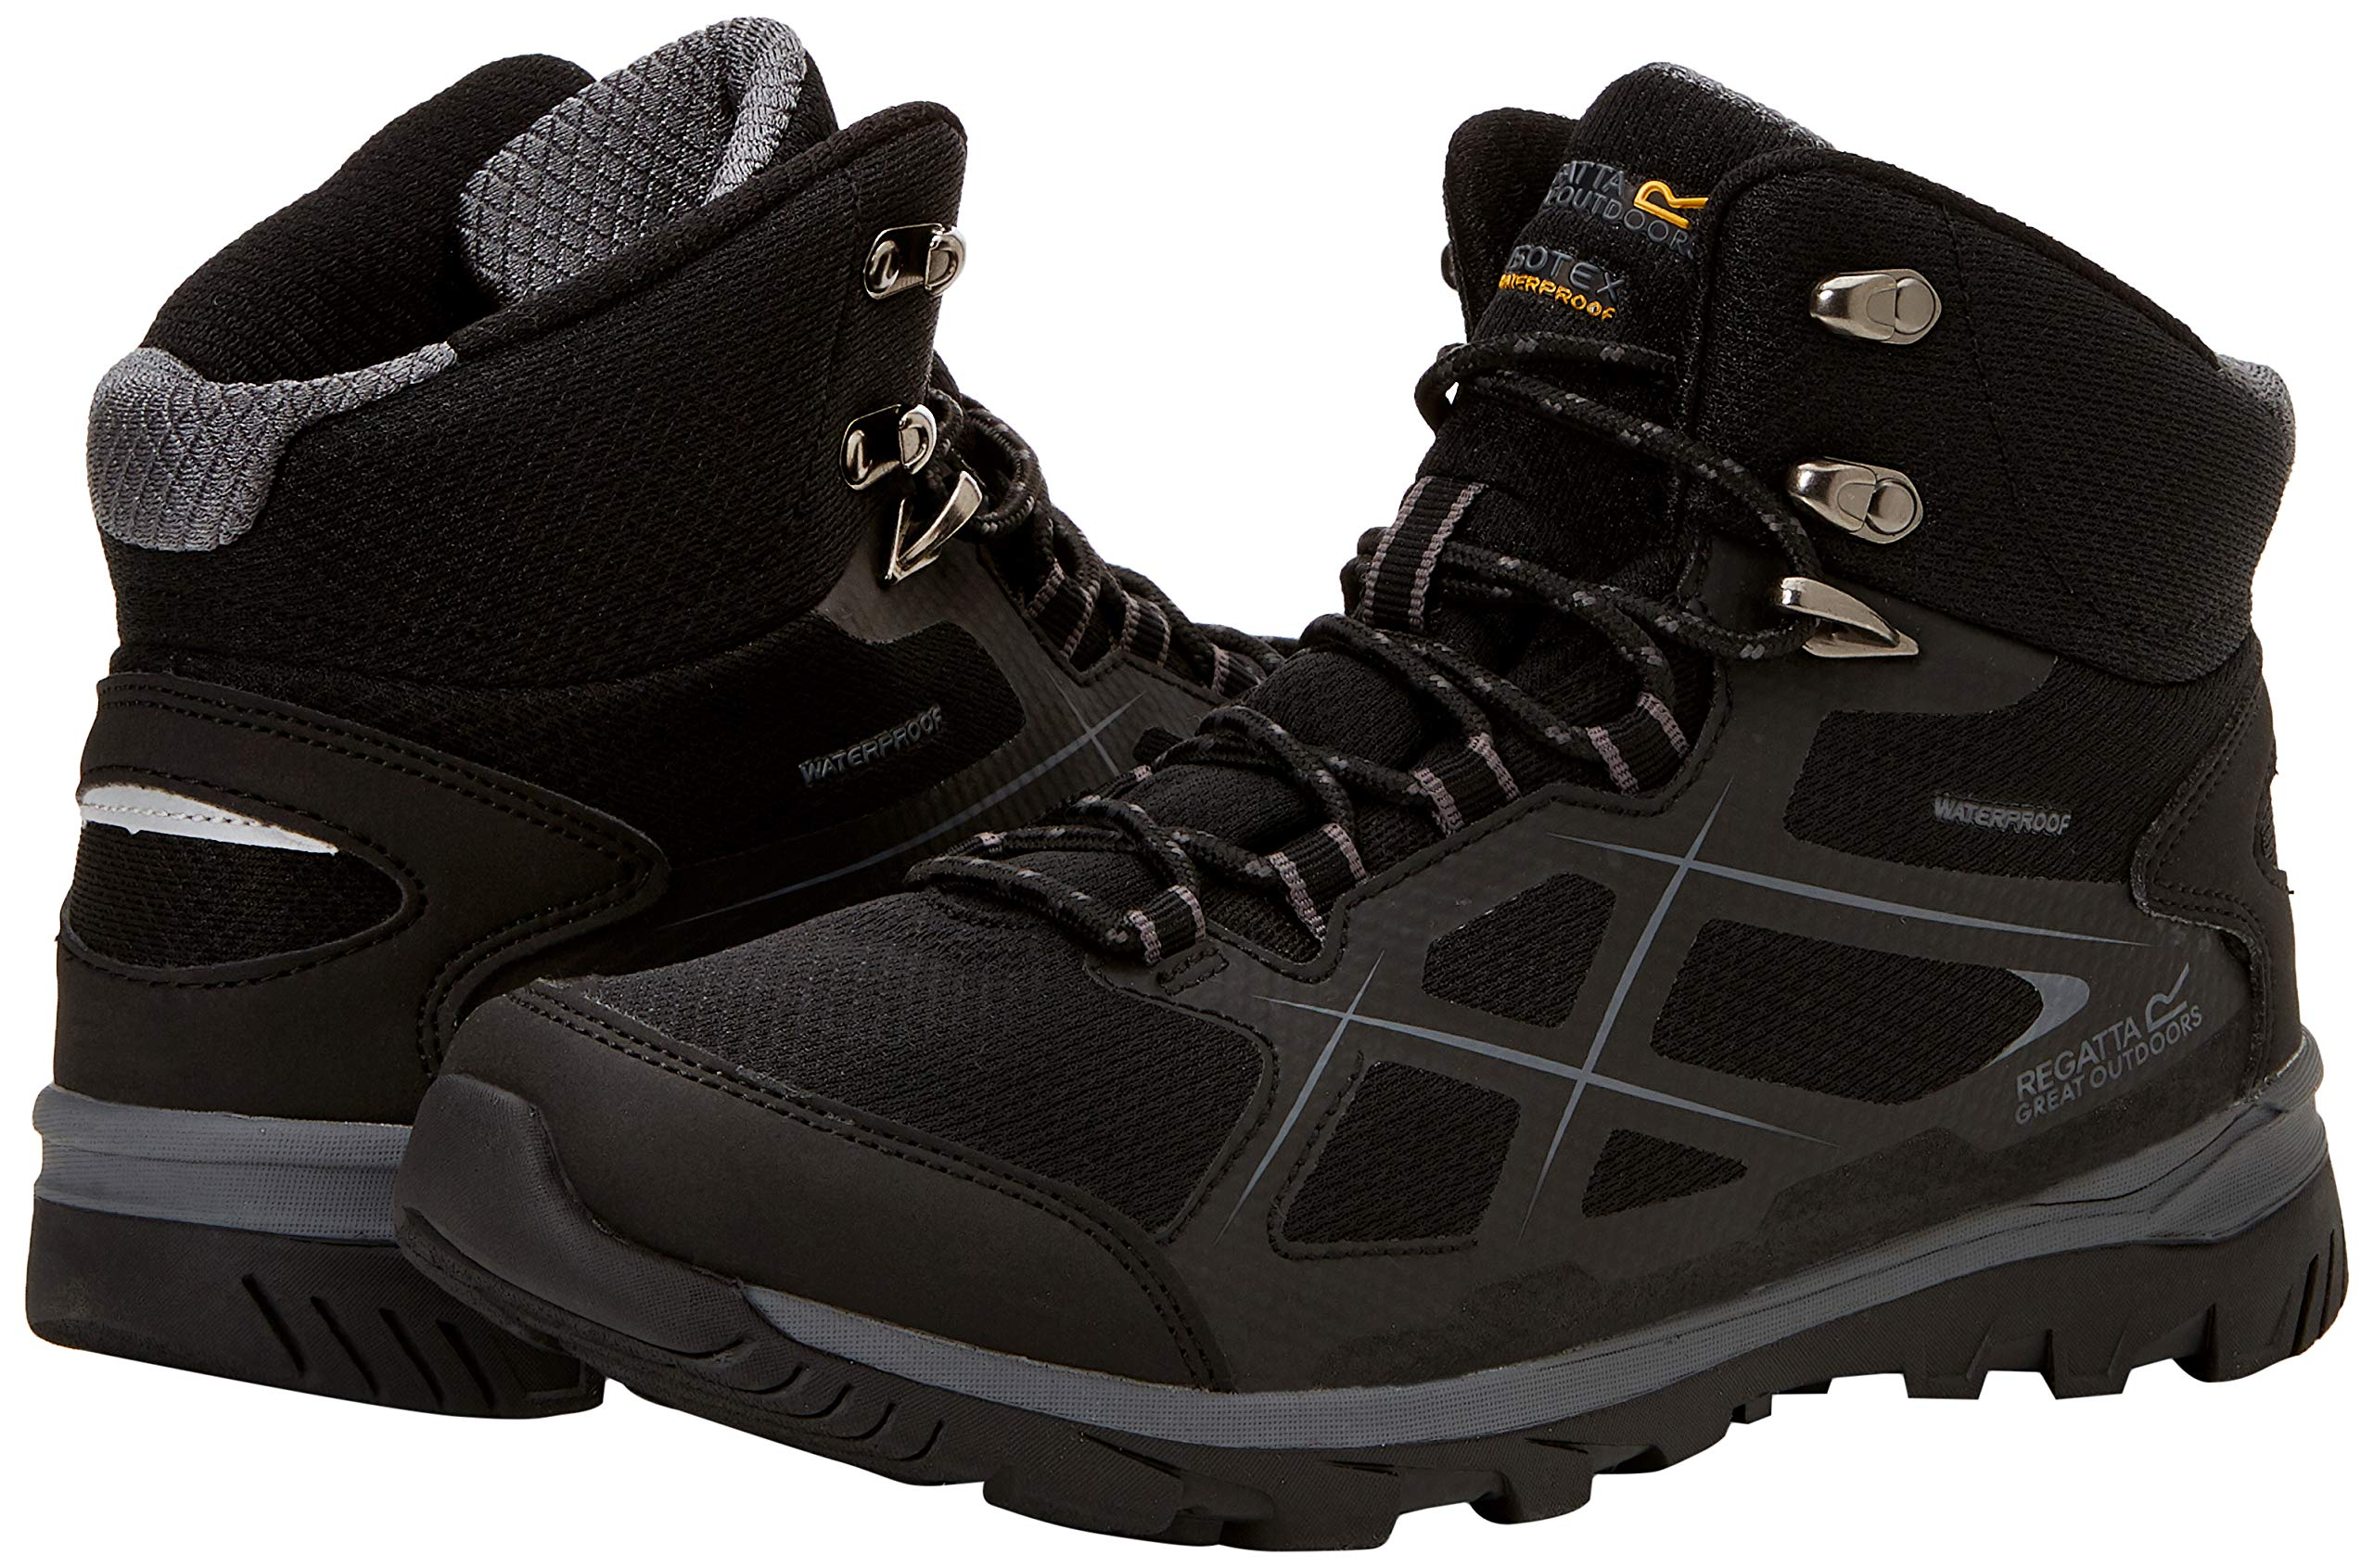 81APoXnDvDL - Regatta Kota Mid, Men's's High Rise Hiking Boots